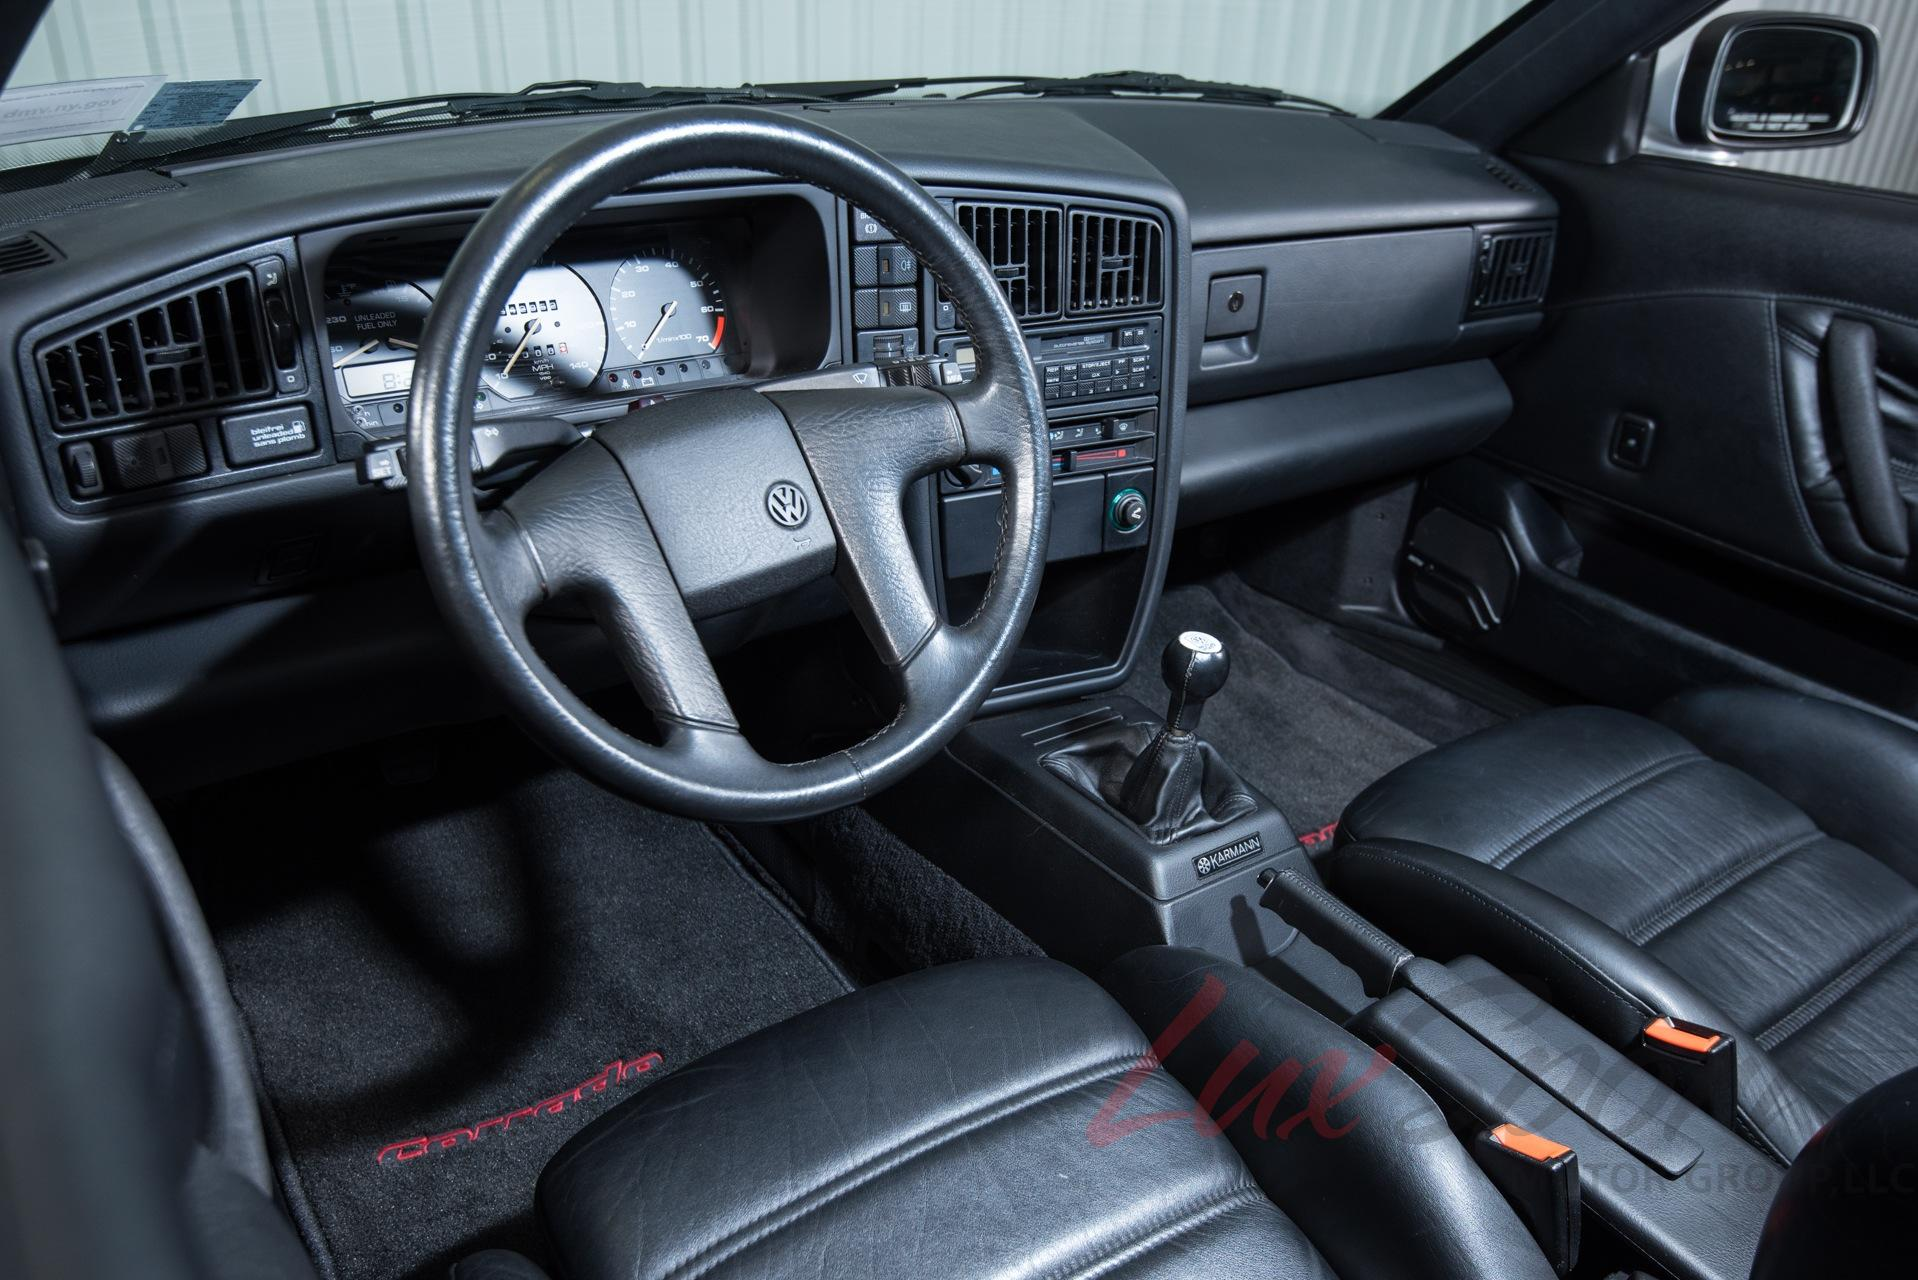 1990 Volkswagen Corrado G60 Coupe Stock # 1990160A for sale near New ...